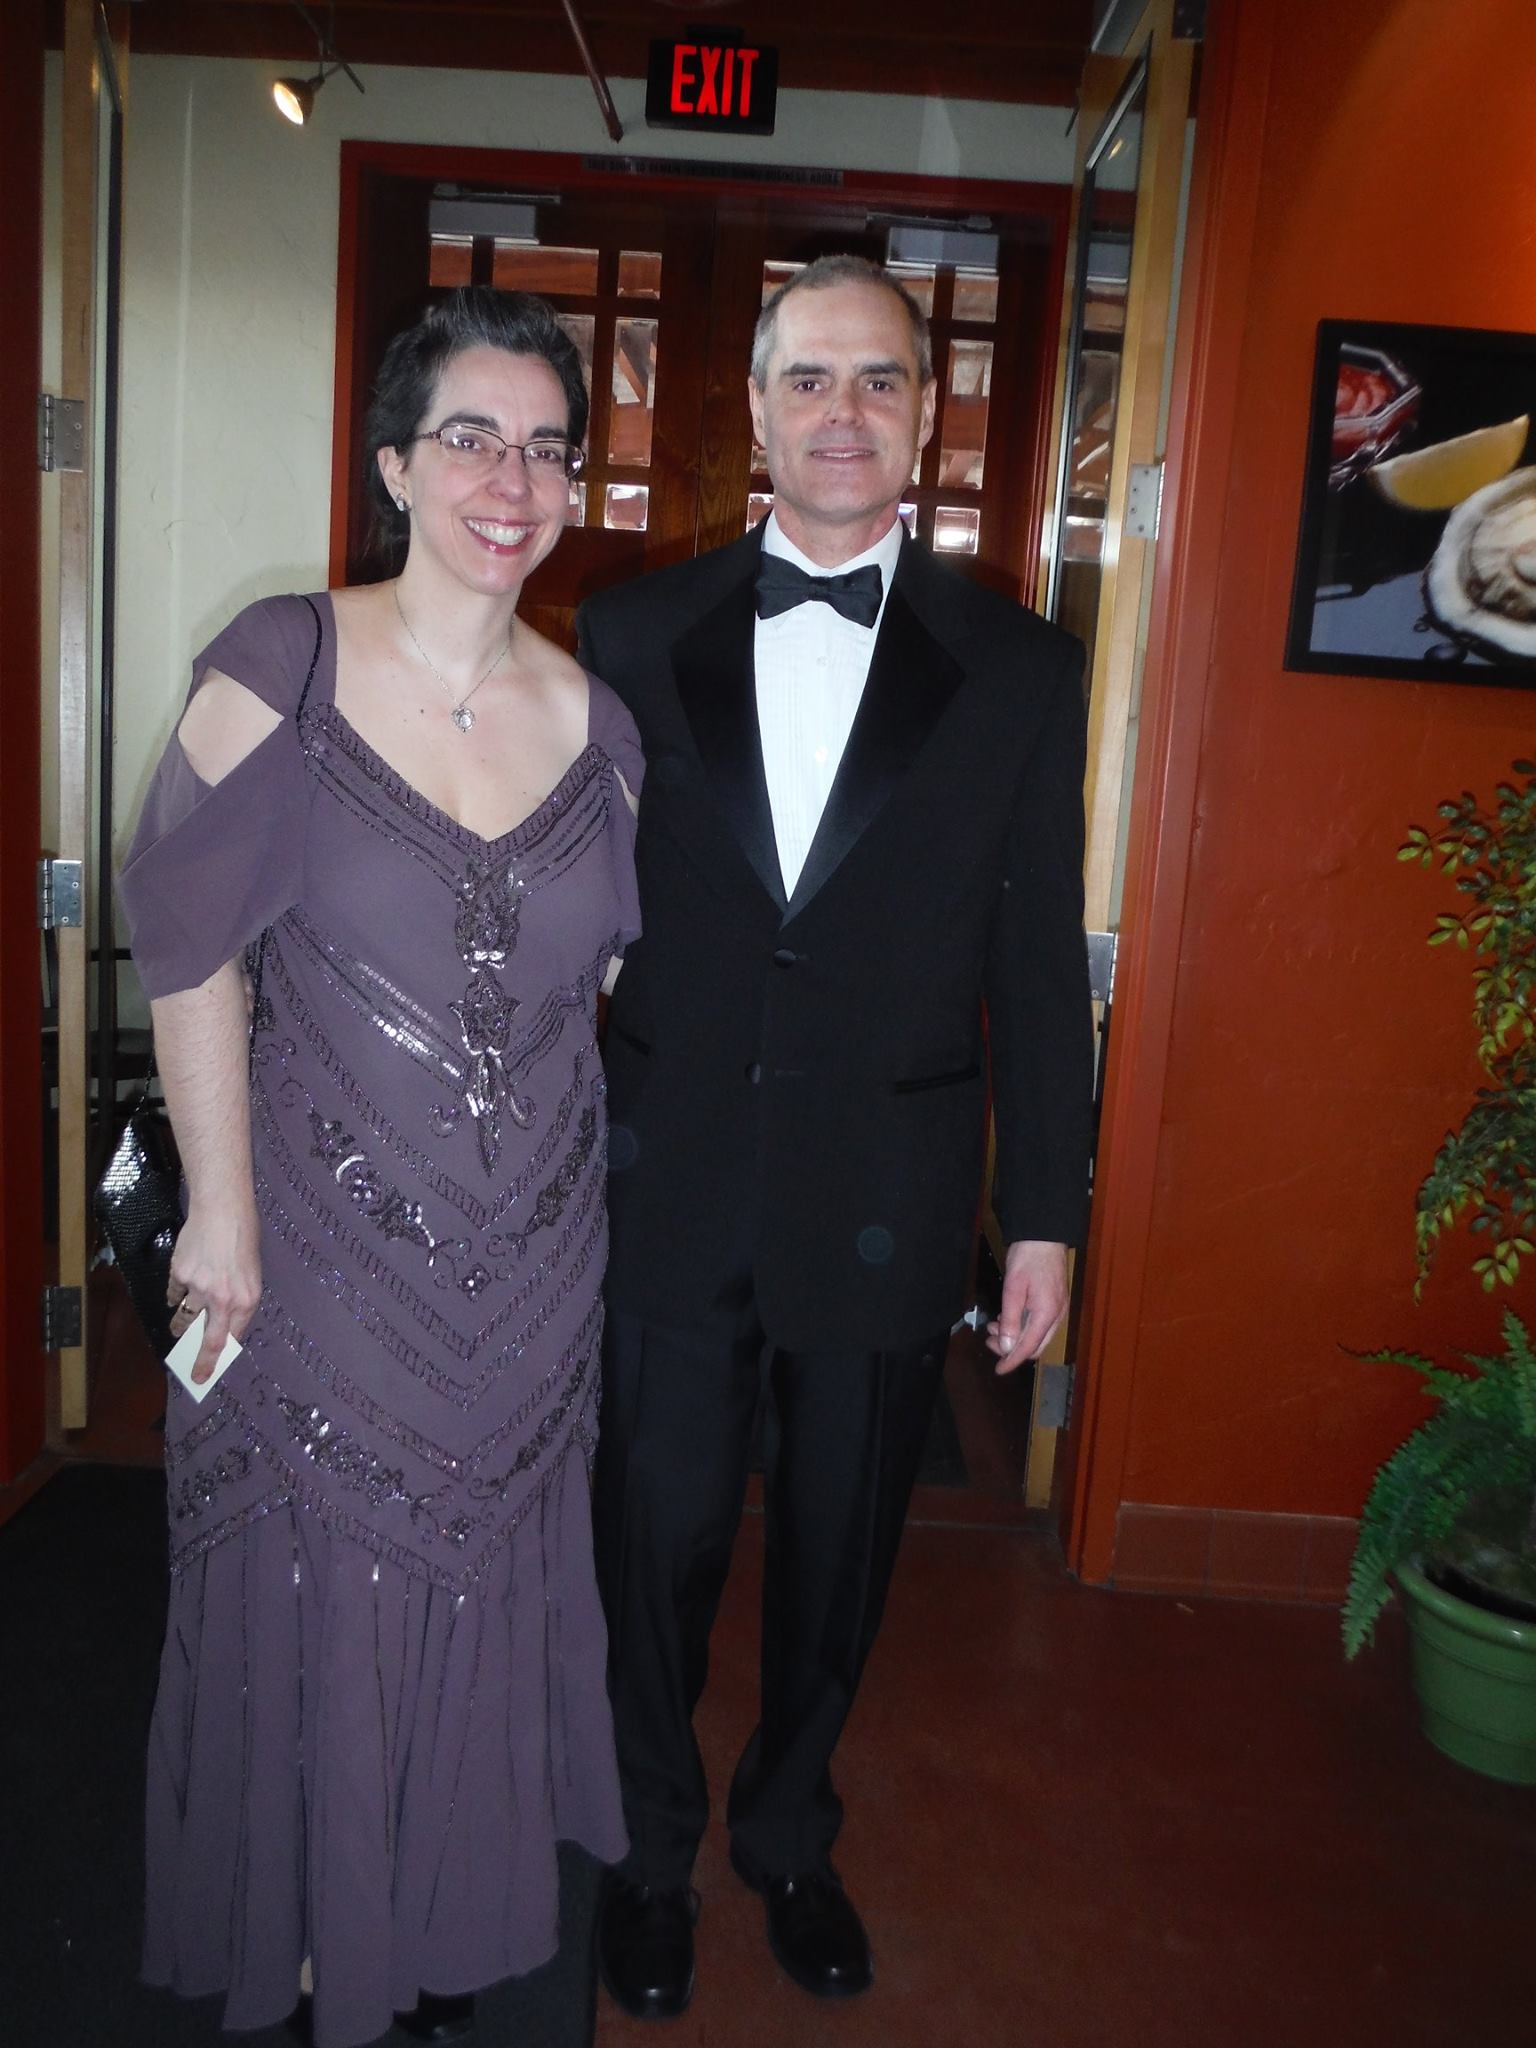 All dressed up for a special date night at a Downton Abbey themed fundraiser dinner.